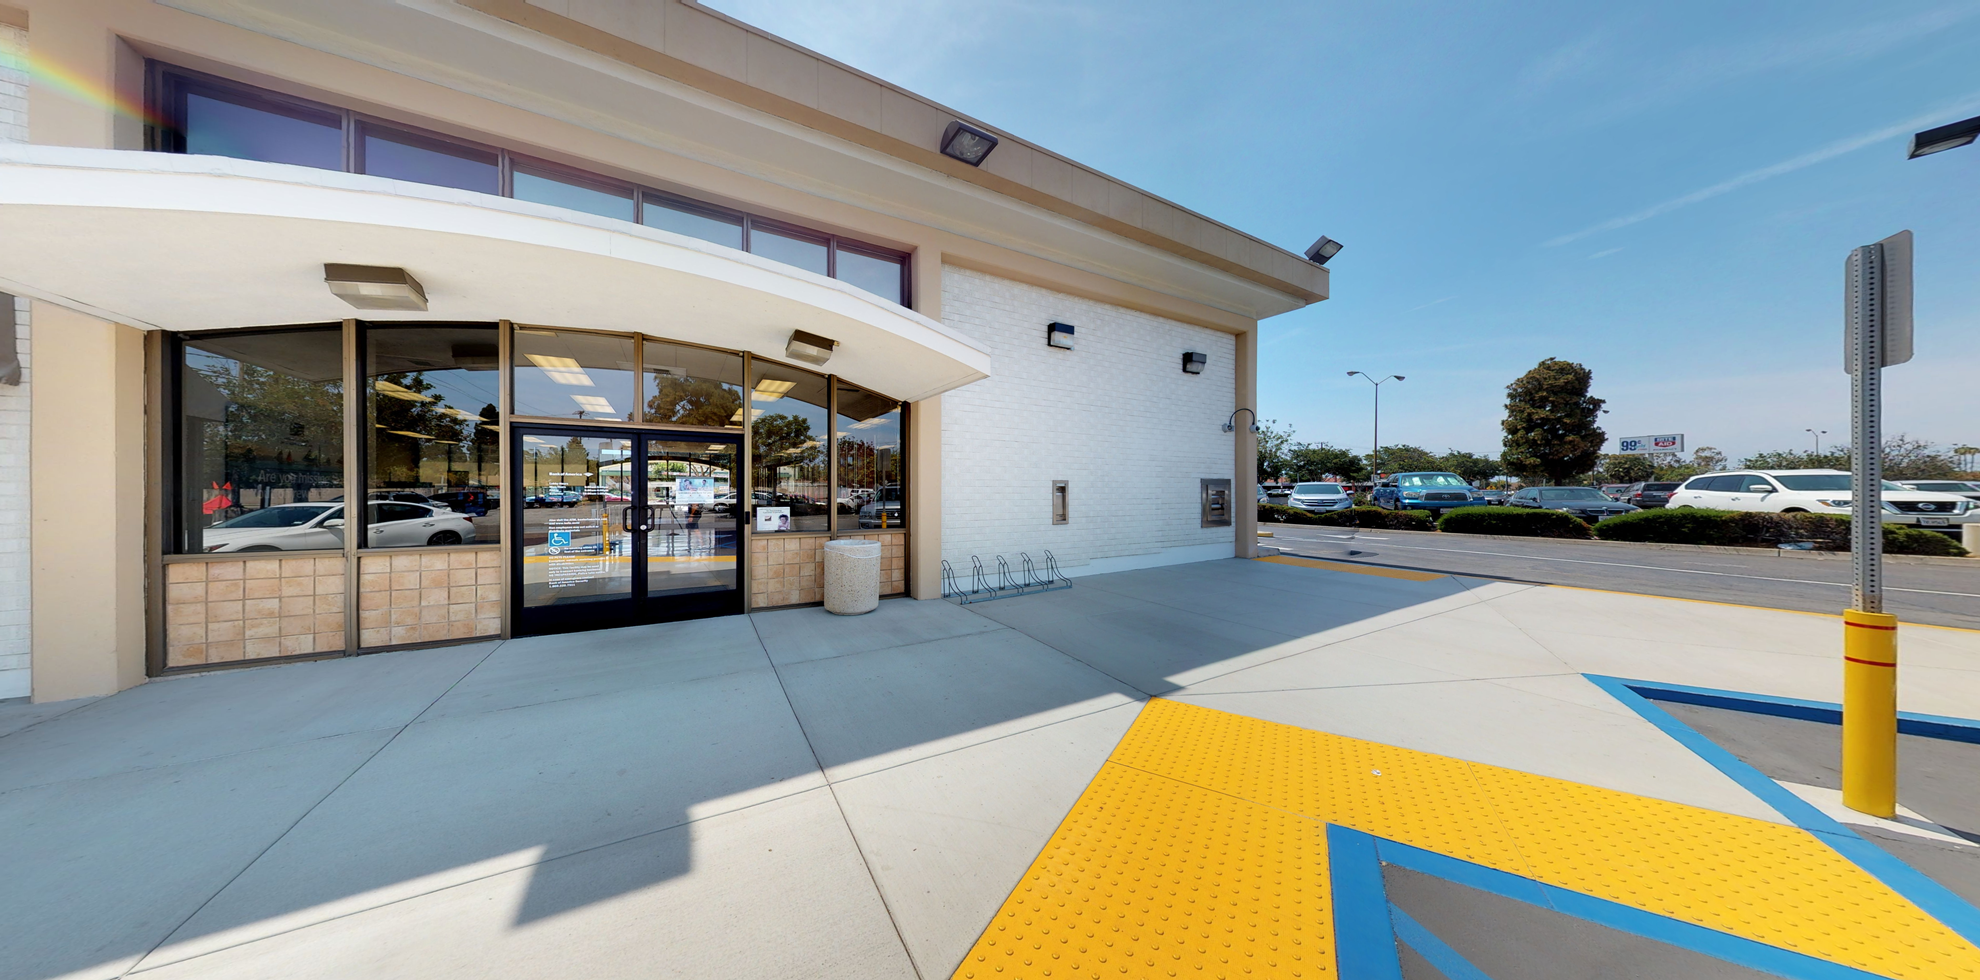 Bank of America financial center with drive-thru ATM | 12421 Valley View St, Garden Grove, CA 92845